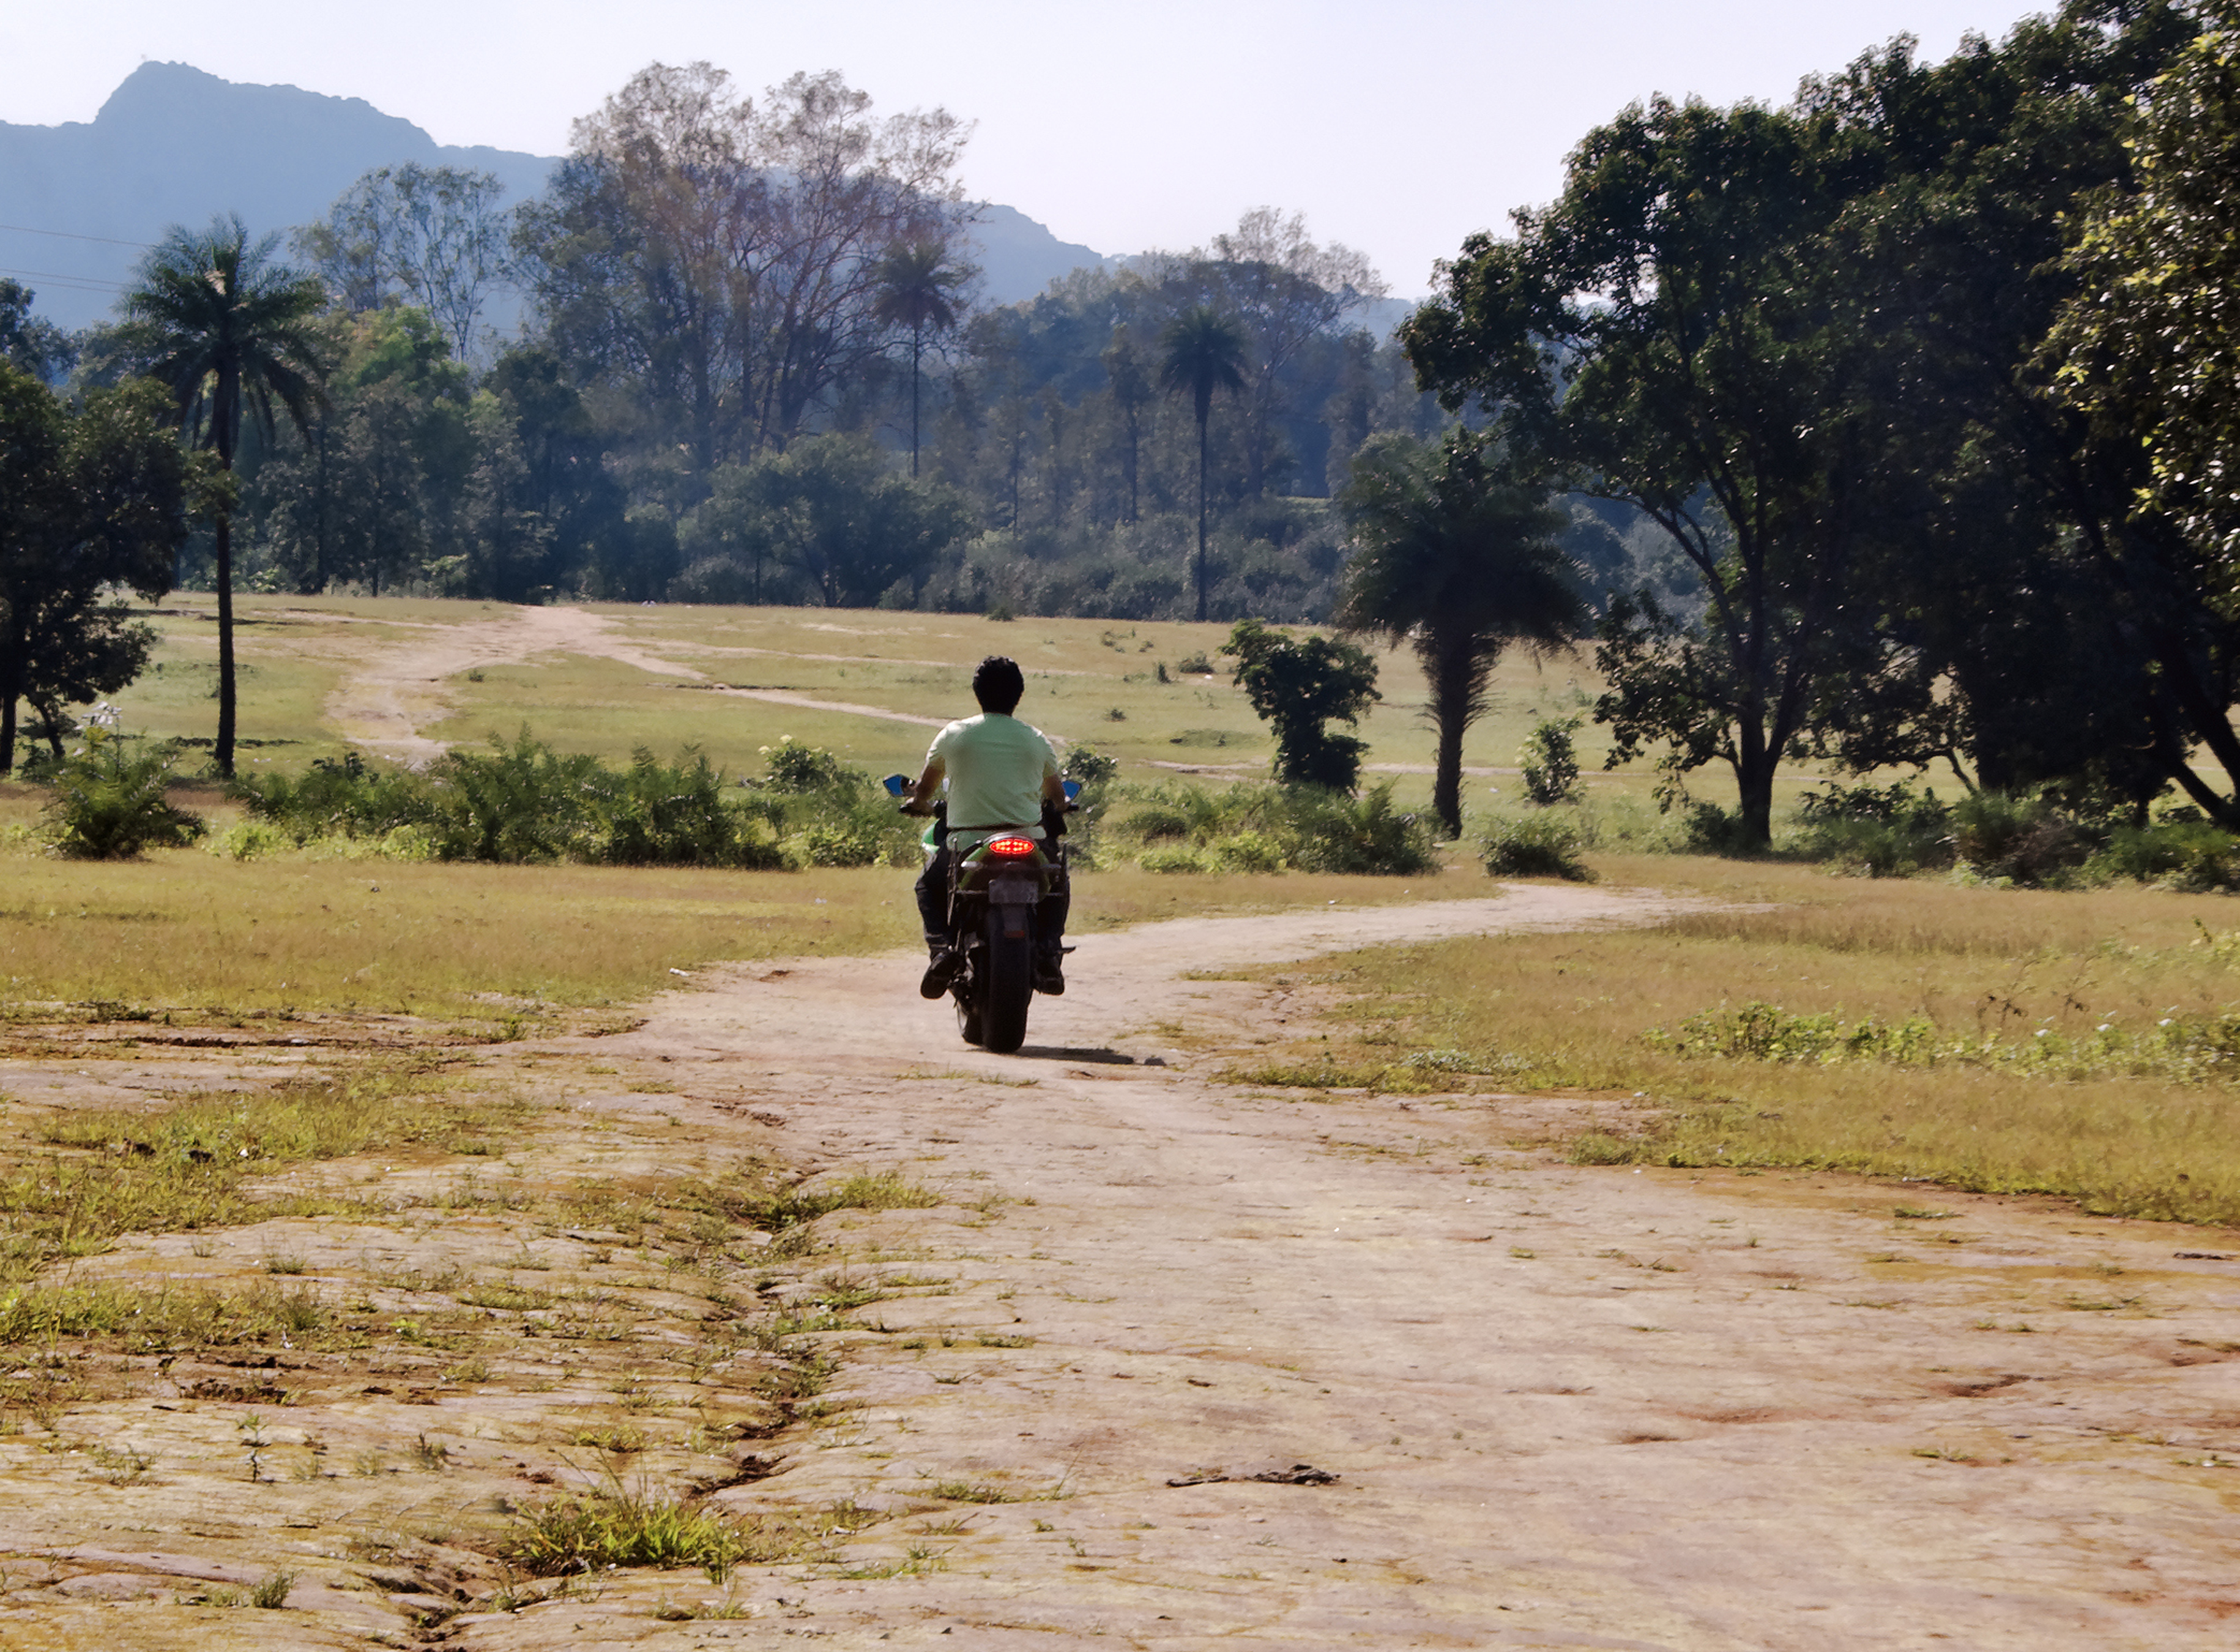 Indian farmer on a moped.